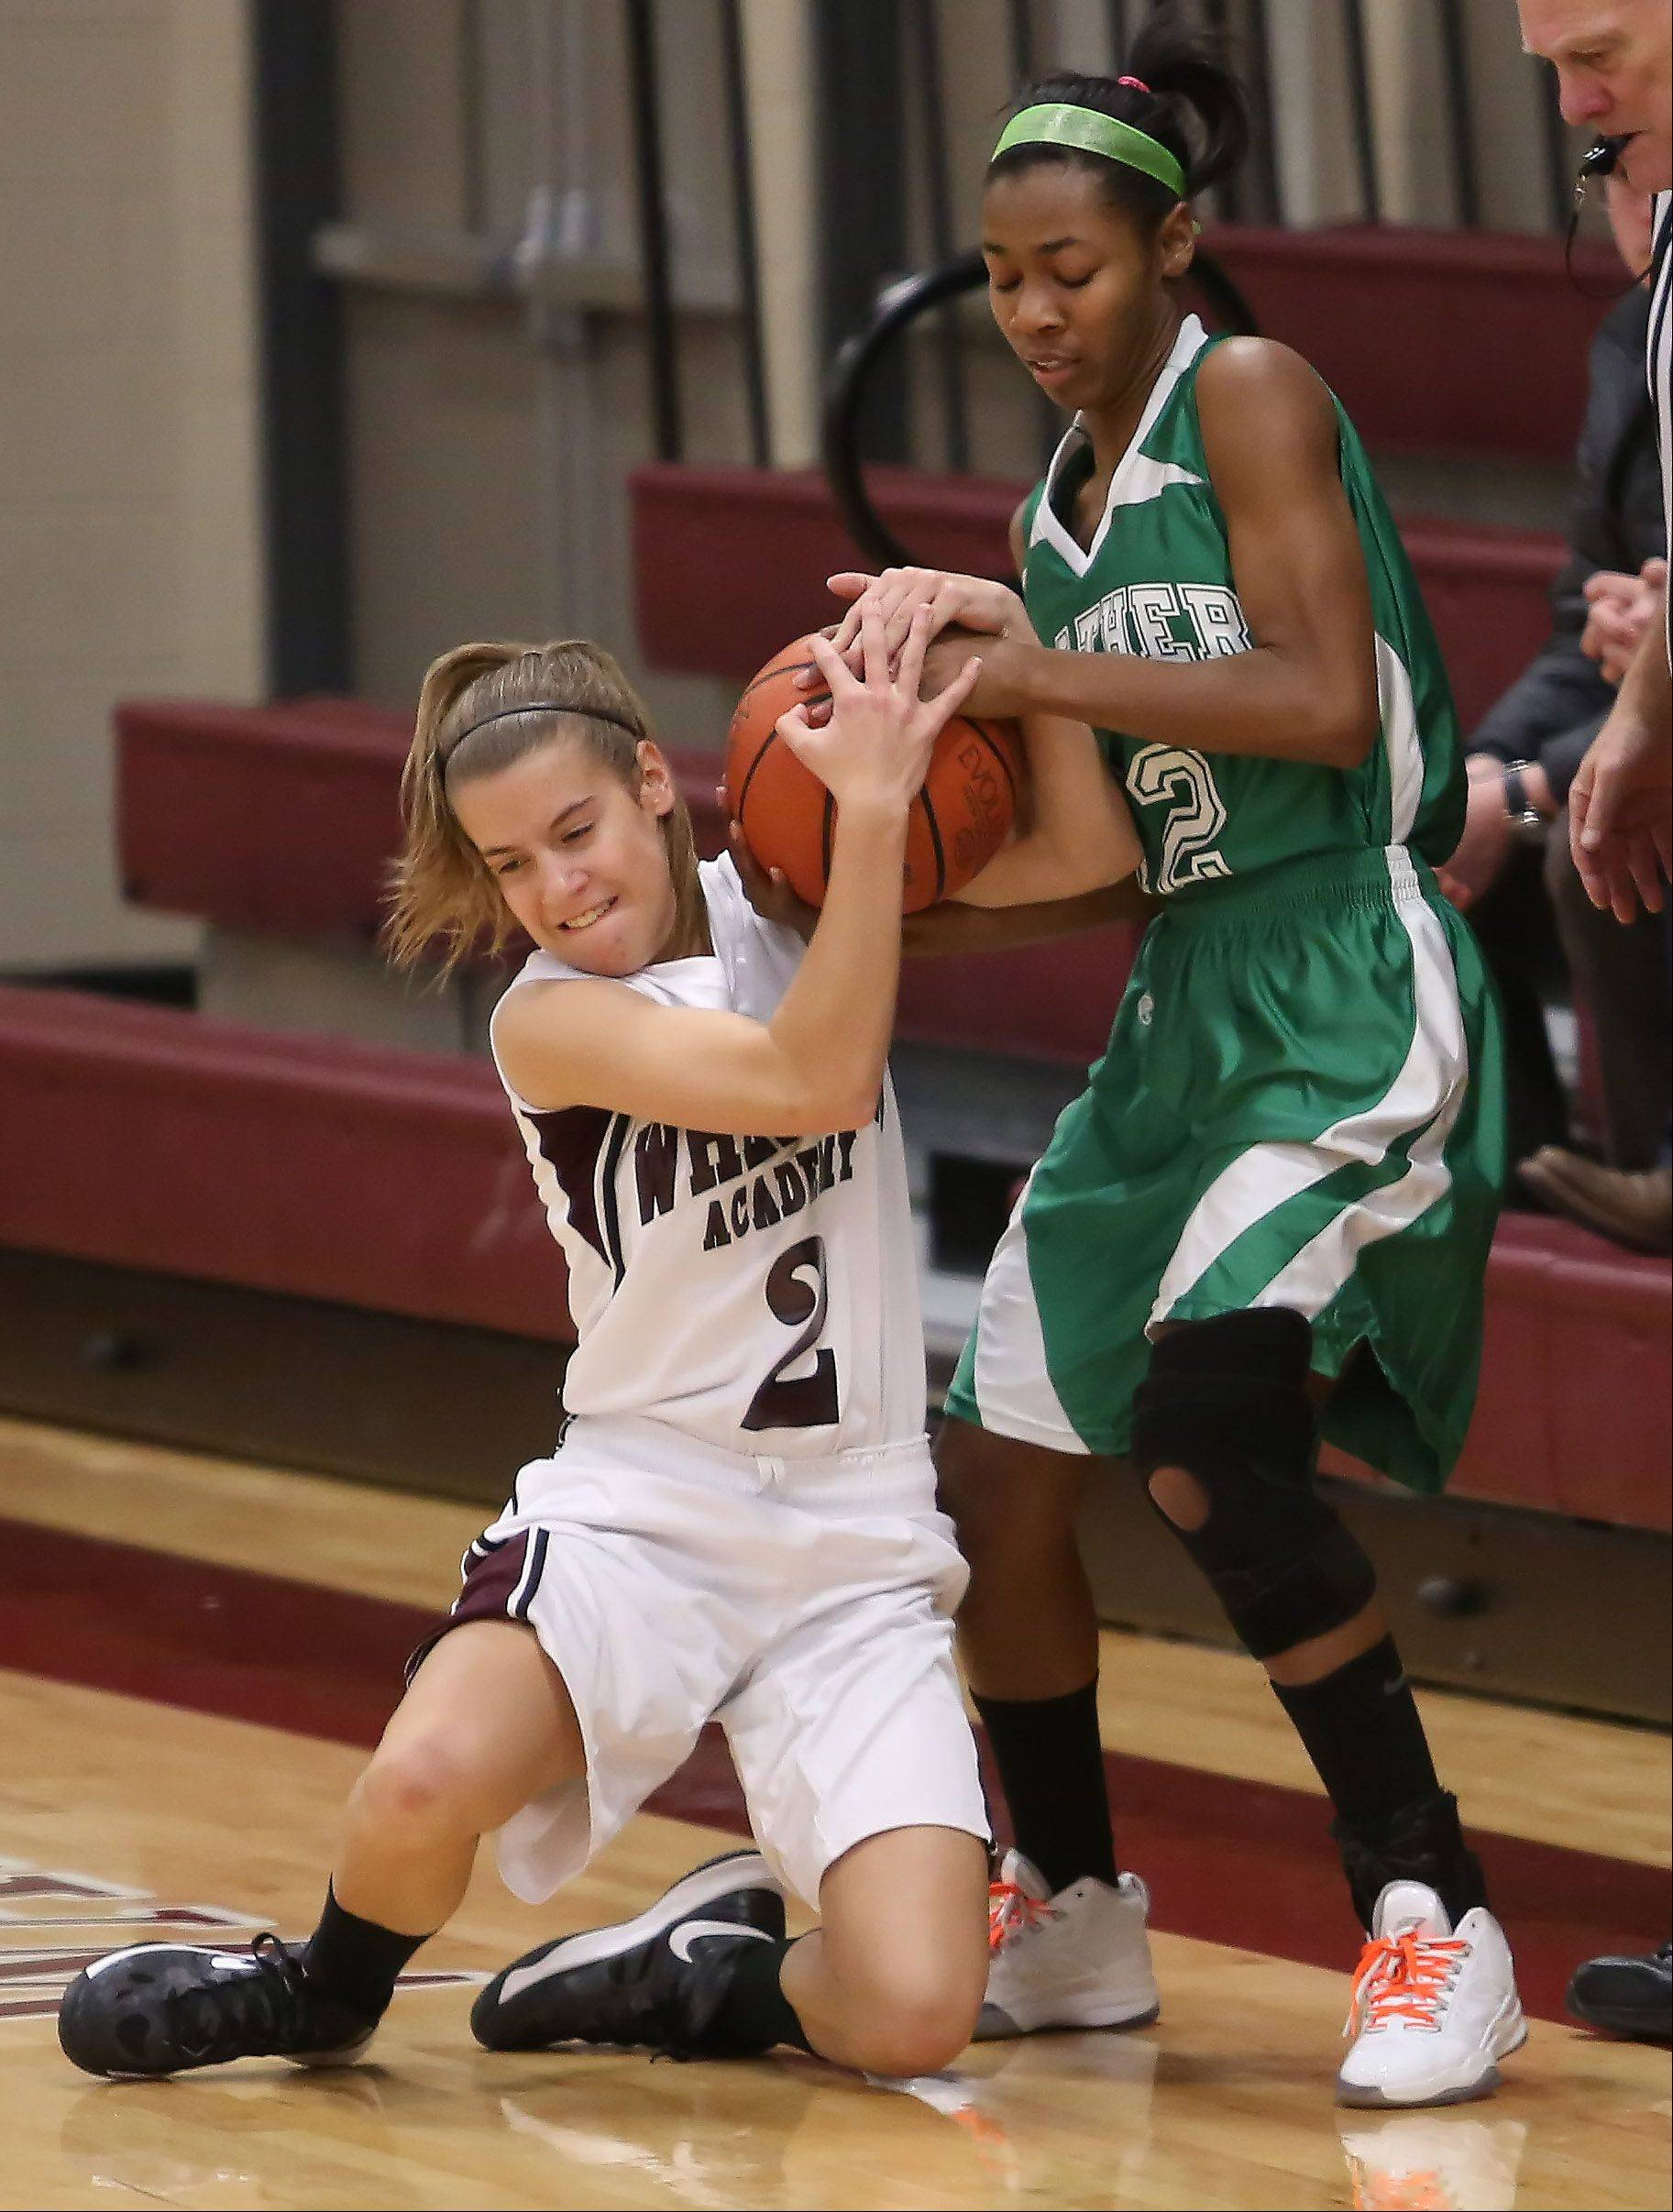 Jamie Netzley, left, of Wheaton Academy and Anna Strong, right, of Walther Lutheran fight for the ball.